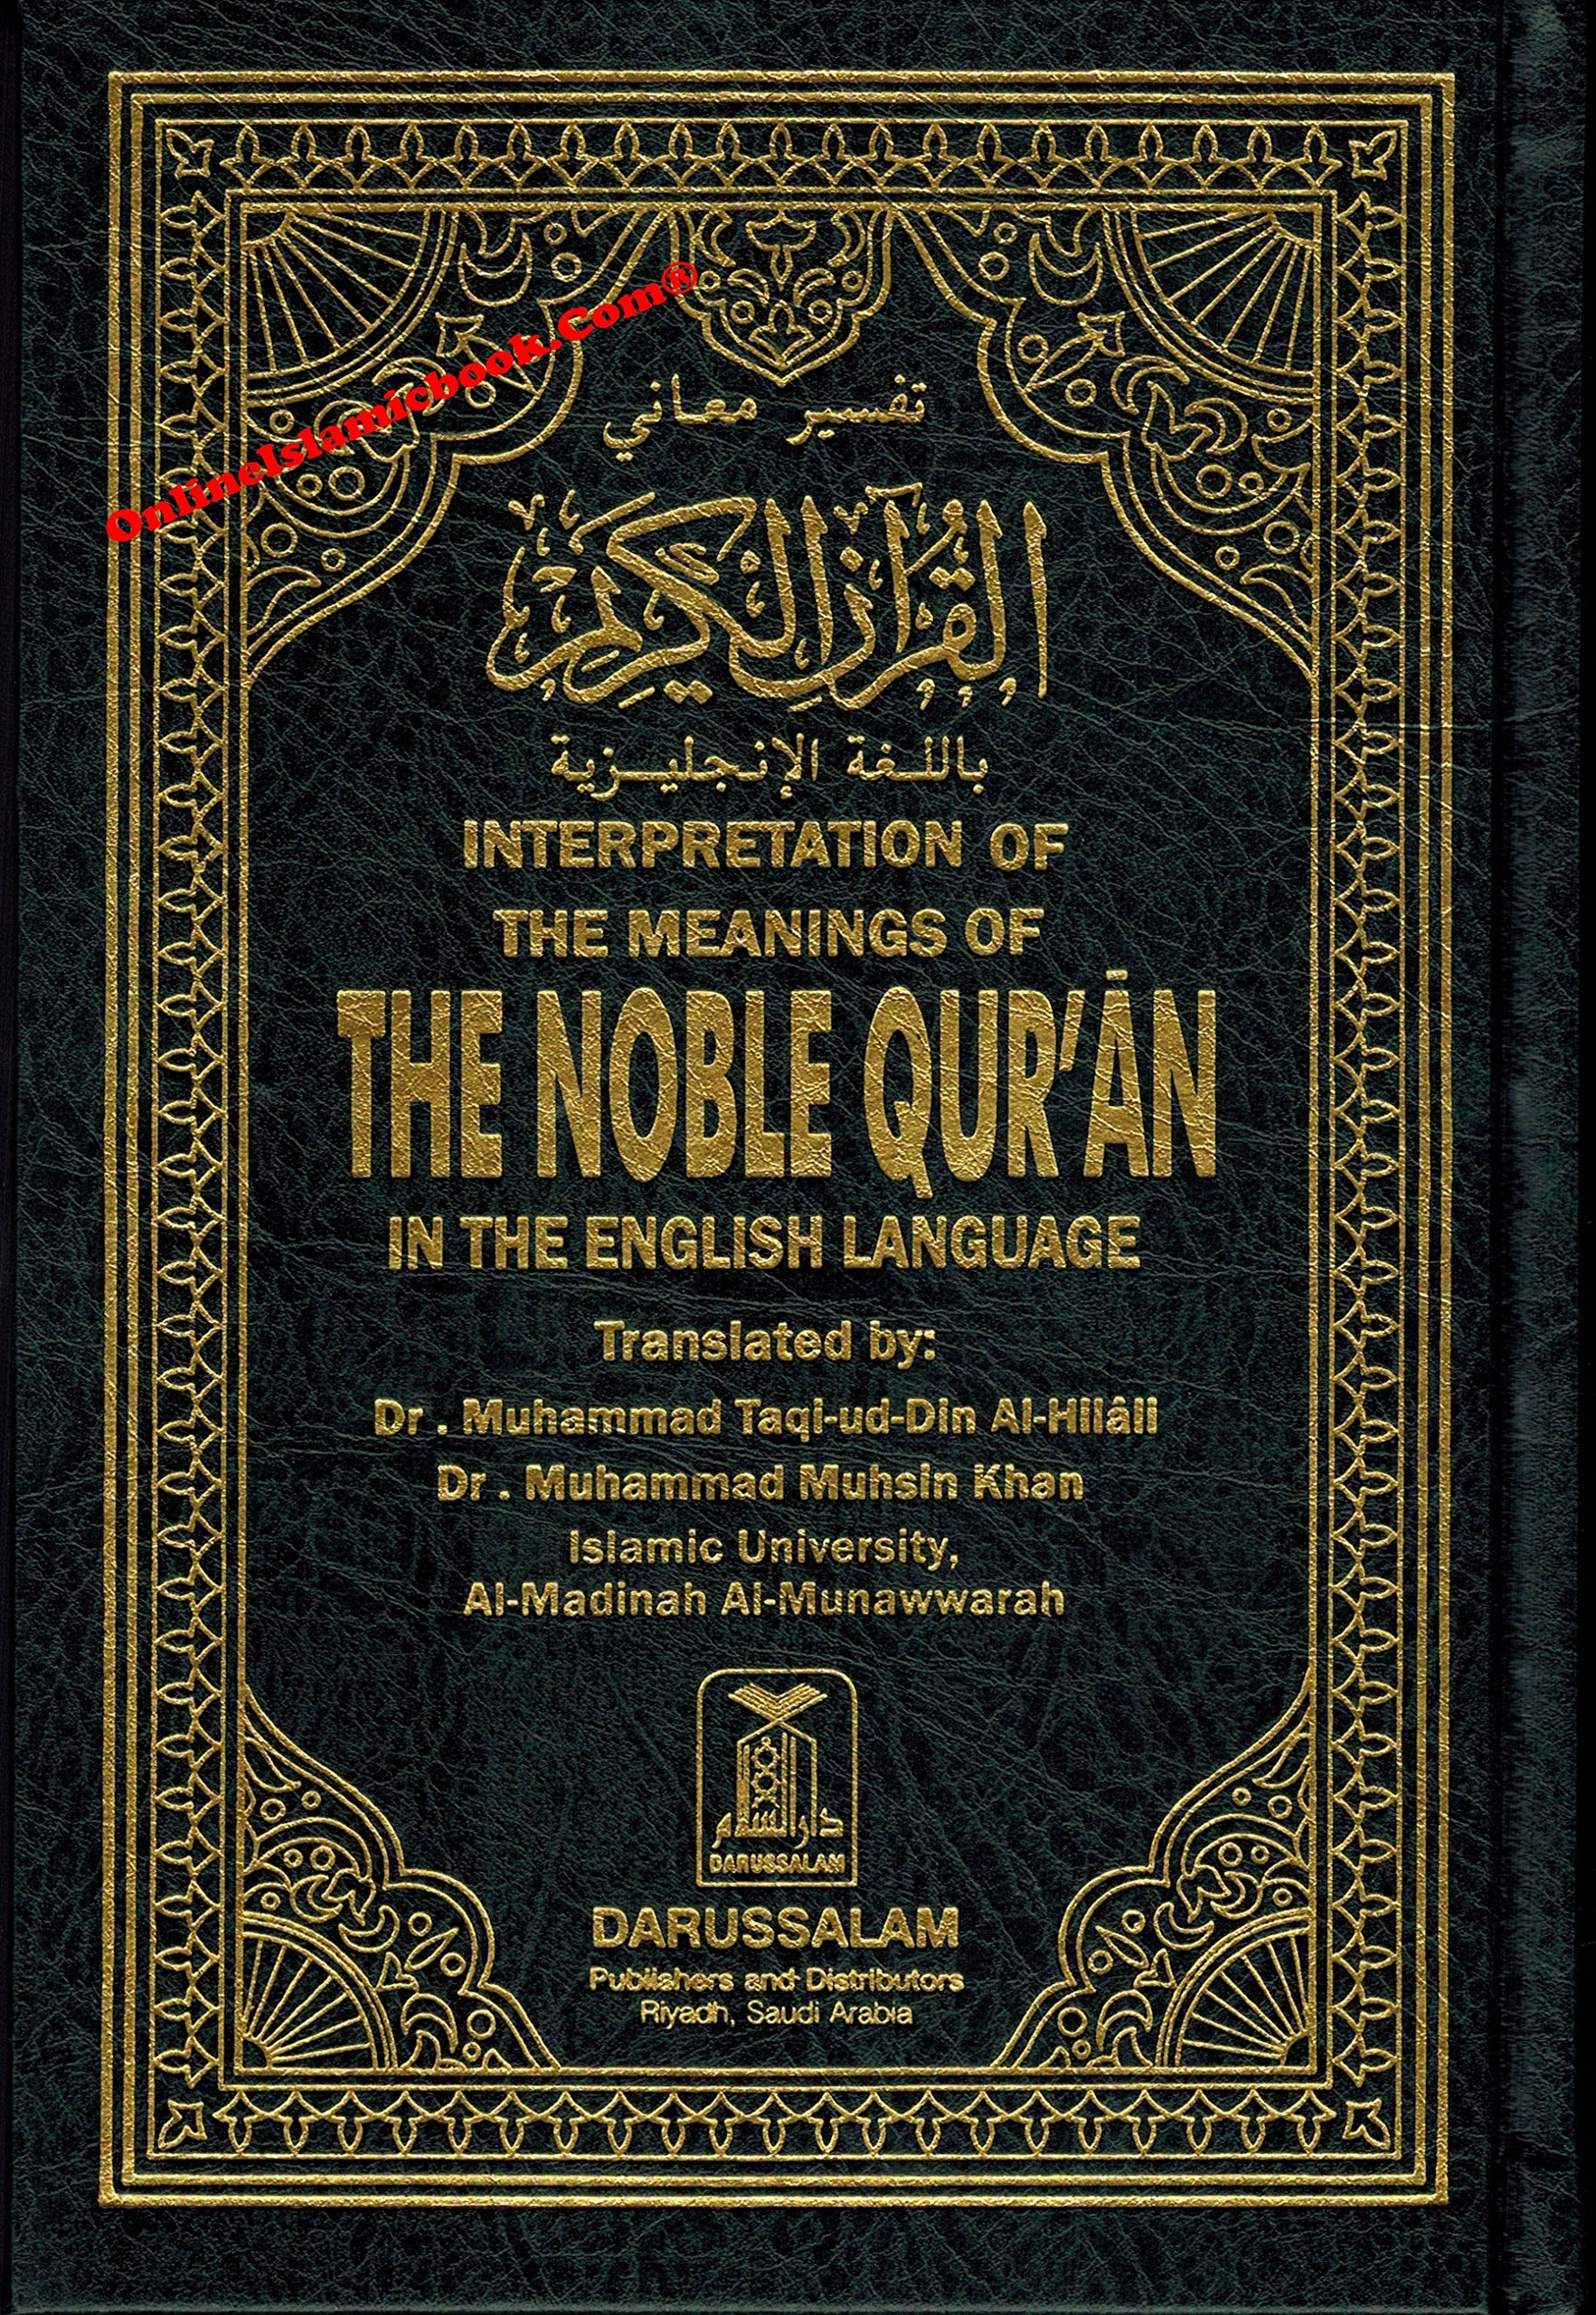 Buy The Noble Quran: Interpretation of the Meanings of the Noble Qur